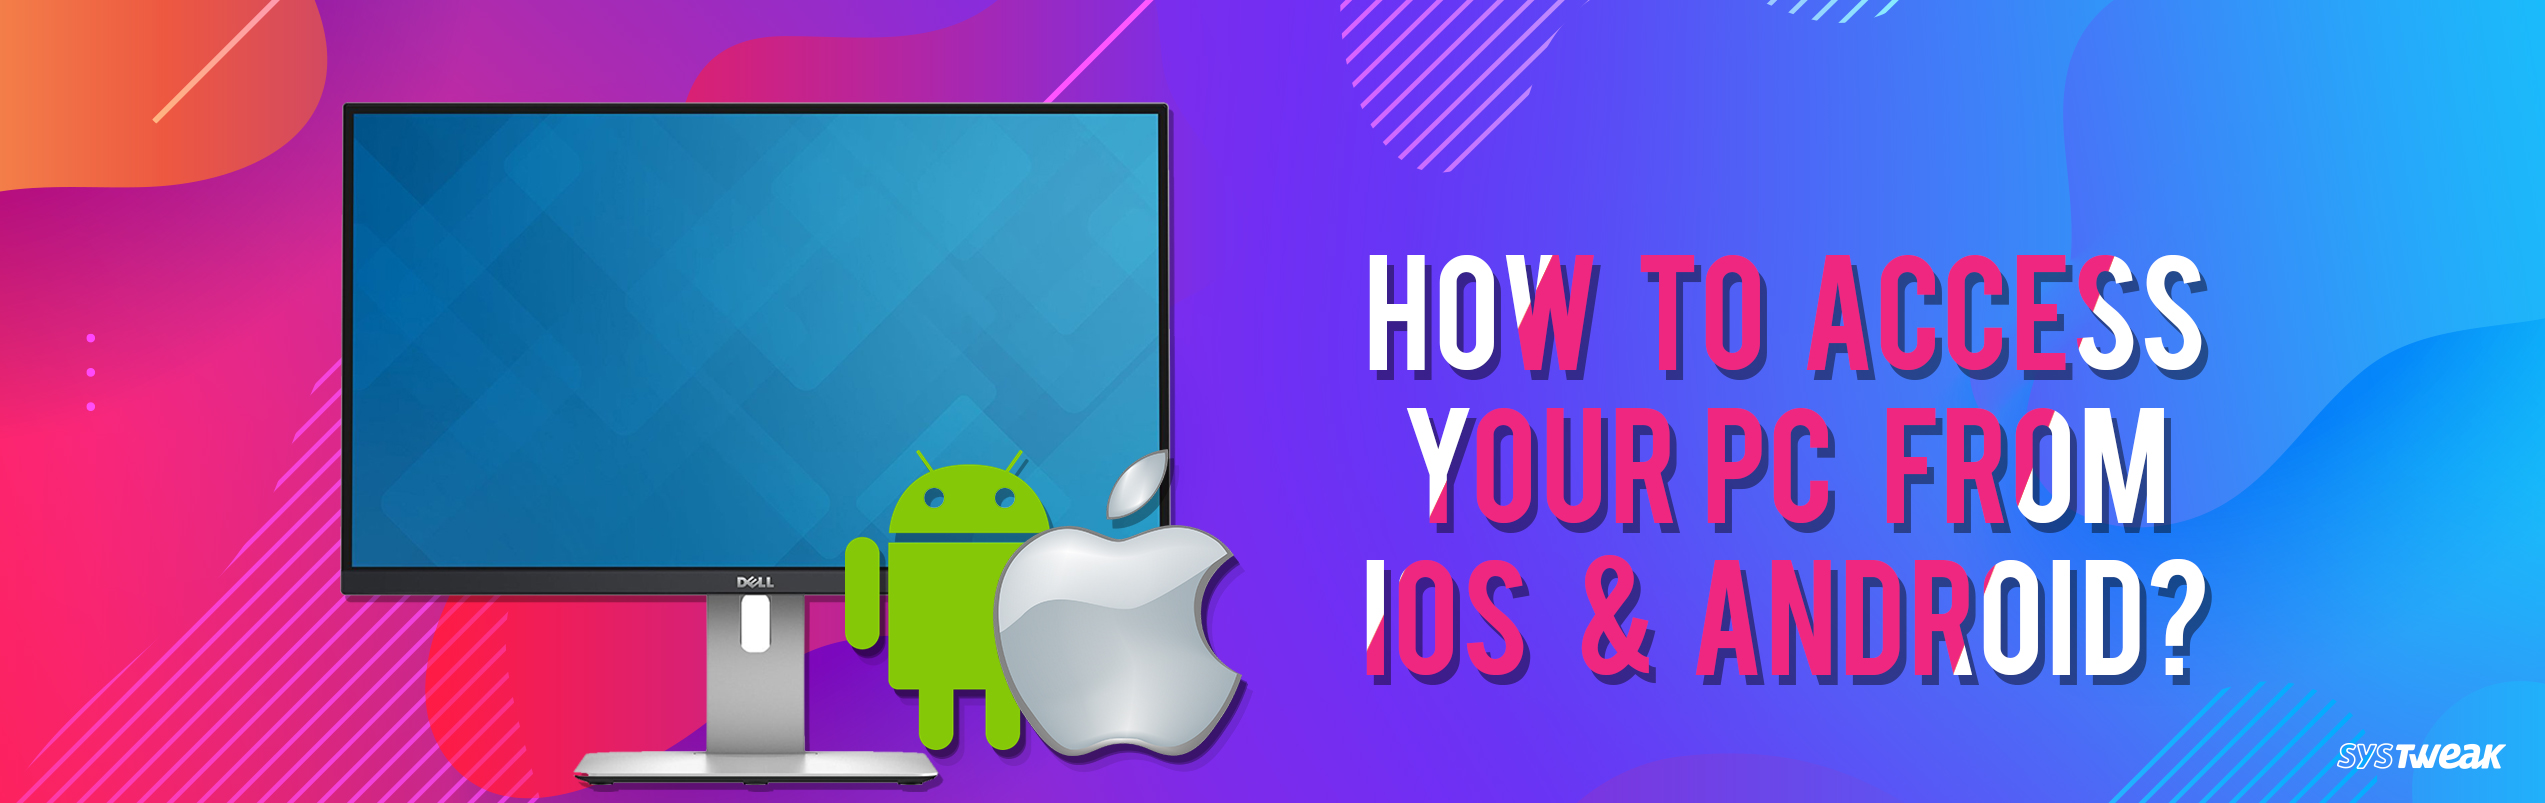 How to Access Your PC From iOS and Android